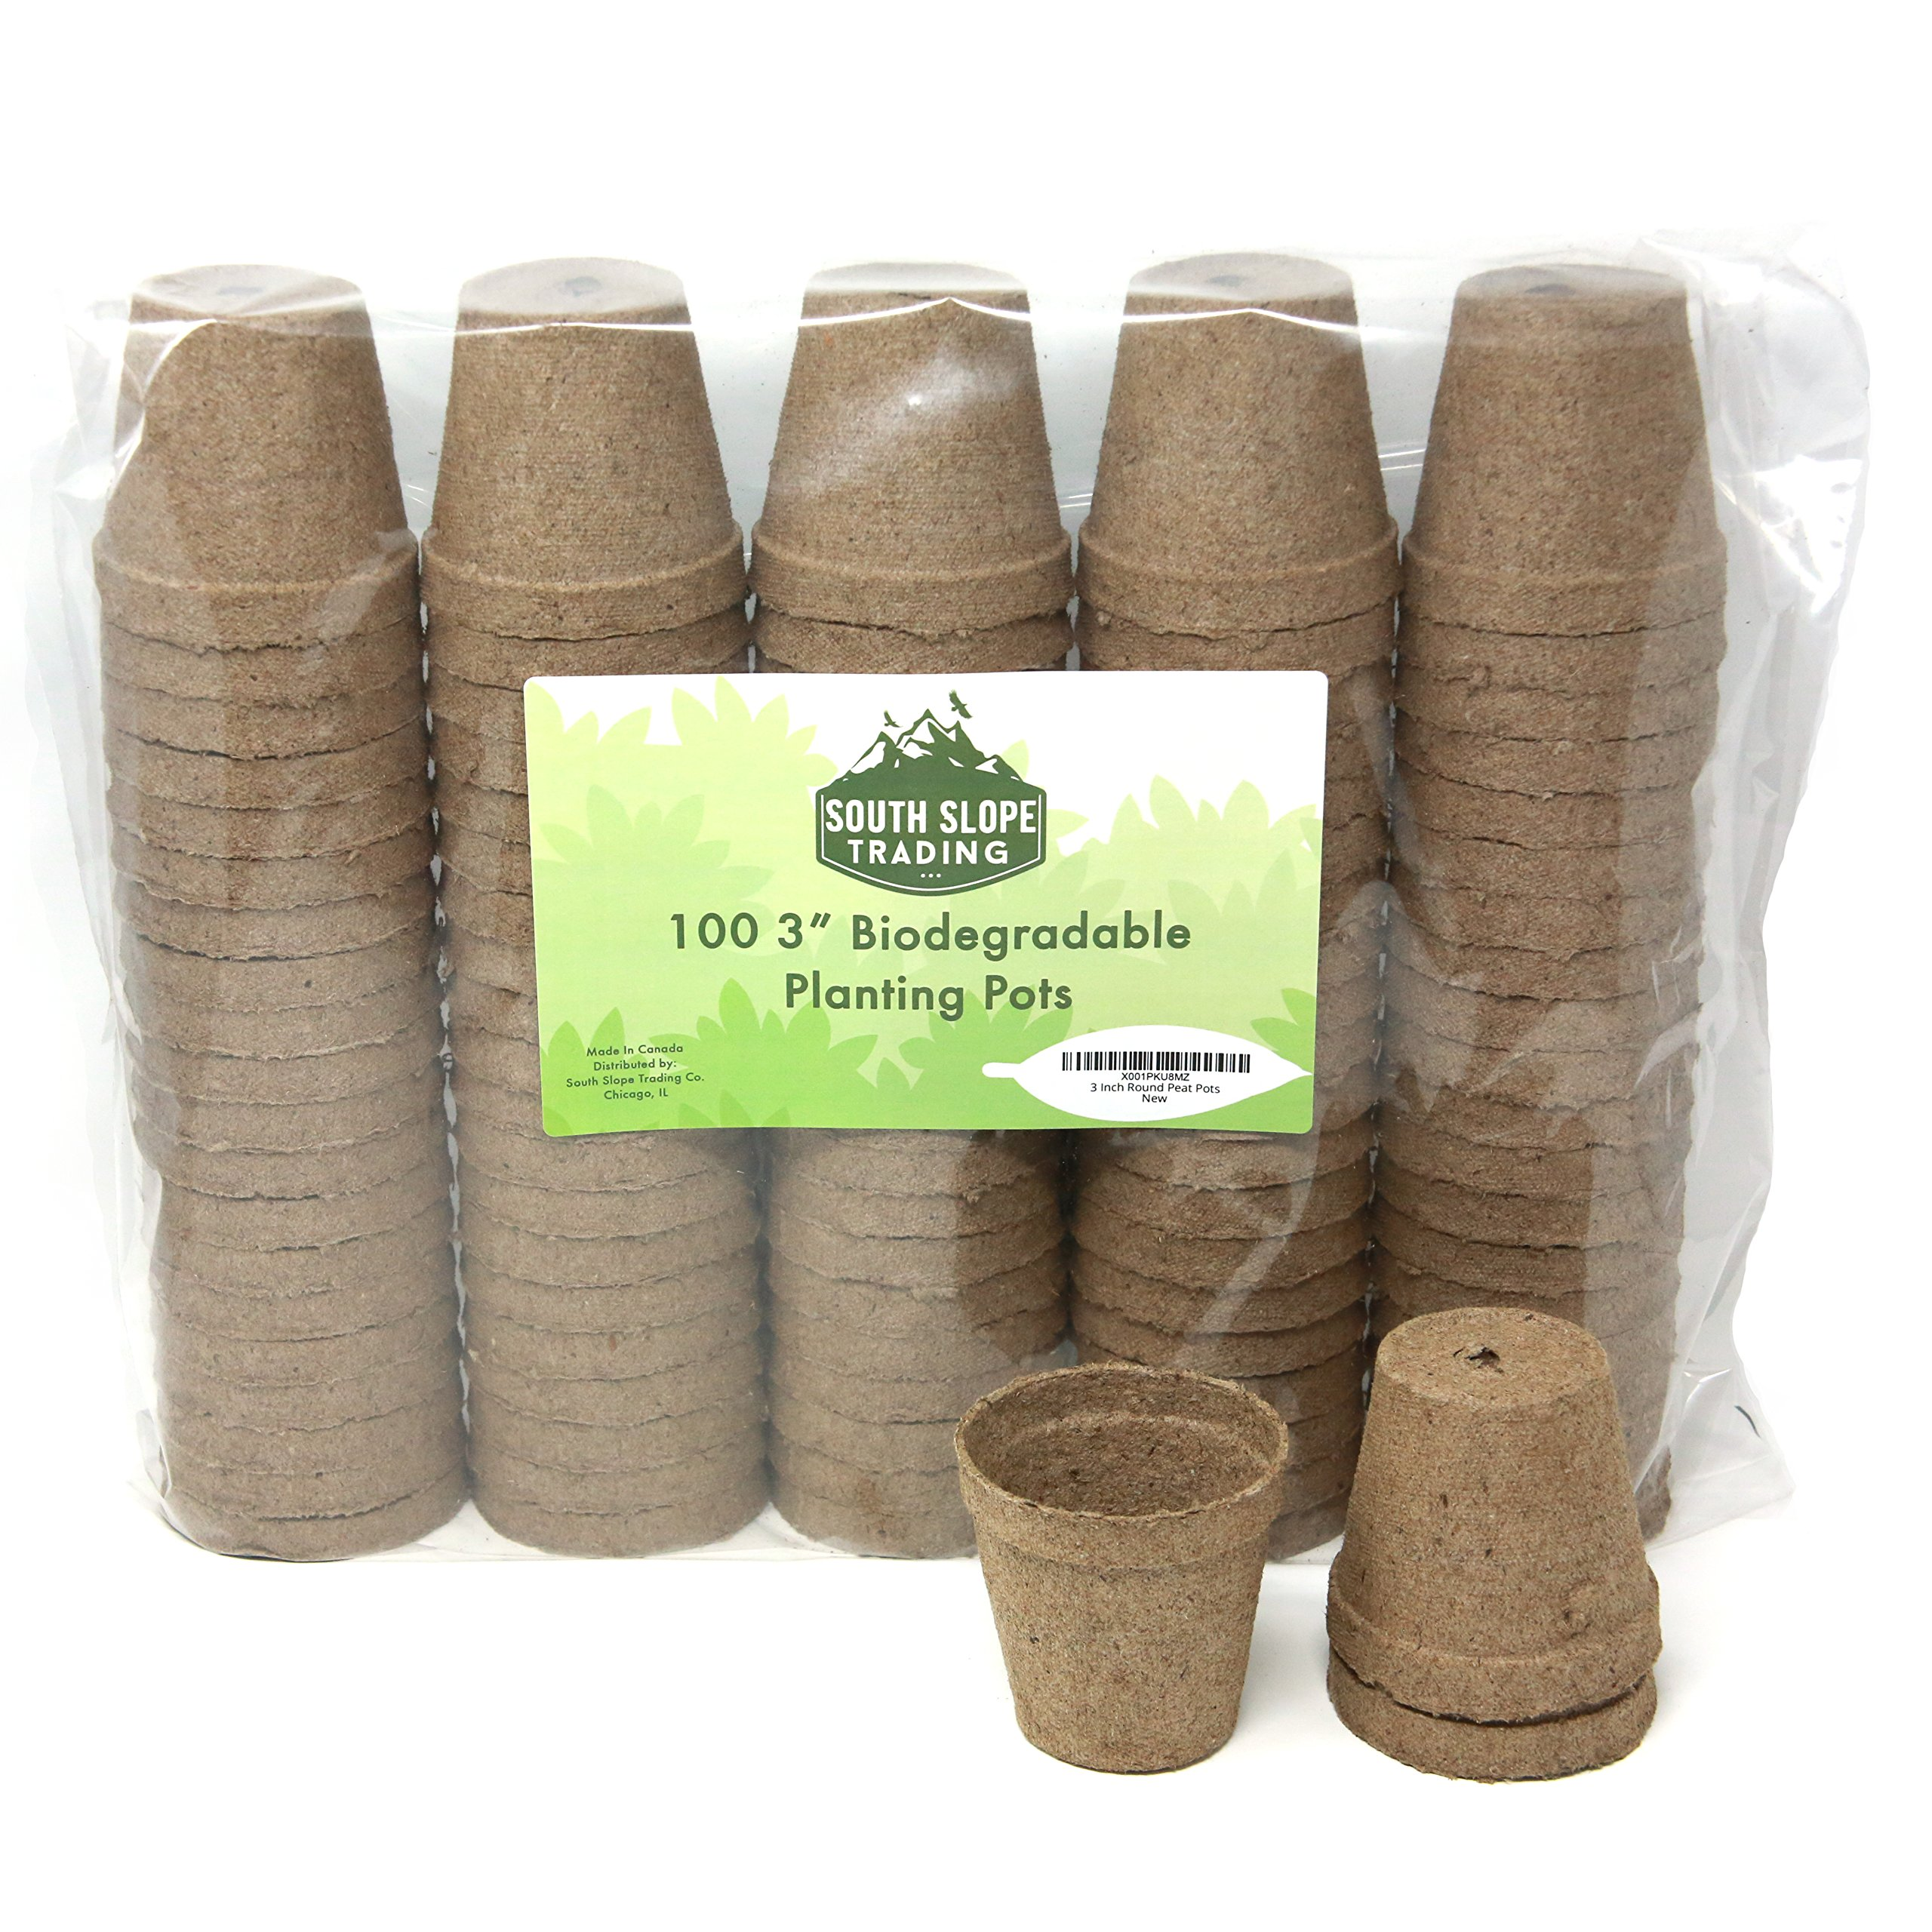 3 Inch Round Peat Pots - 100% Biodegradable Peet Pots for seedlings - Peat Pots Pack of 100 - Peat Pots 3'' Jiffy Pots Made in North America